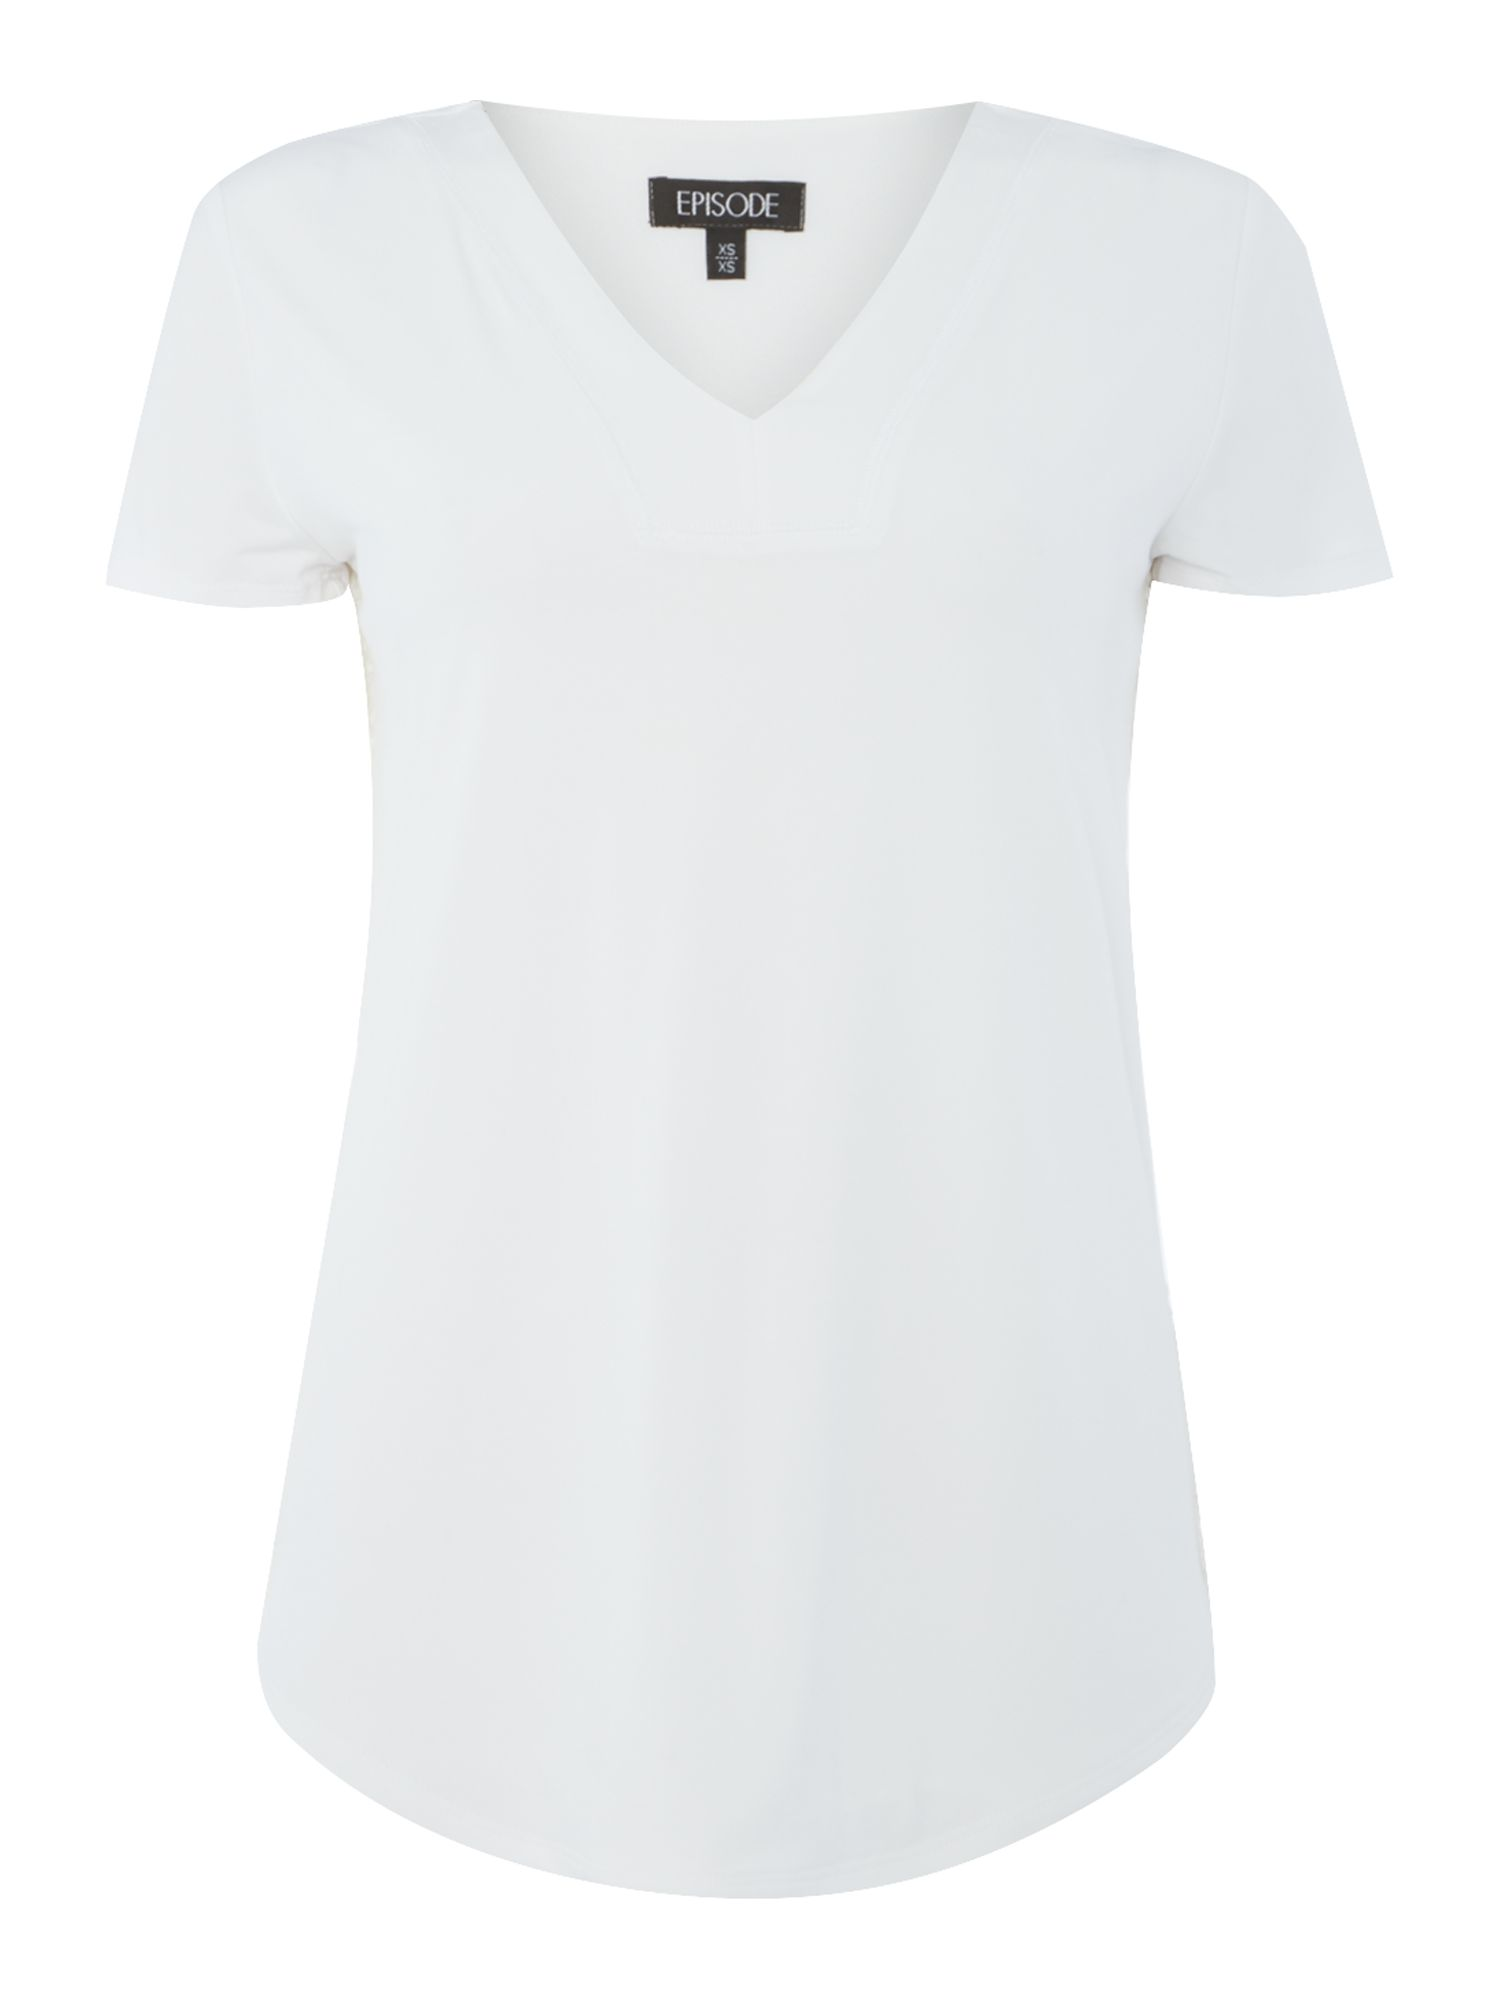 Episode Episode Short sleeve lace back woven top, White